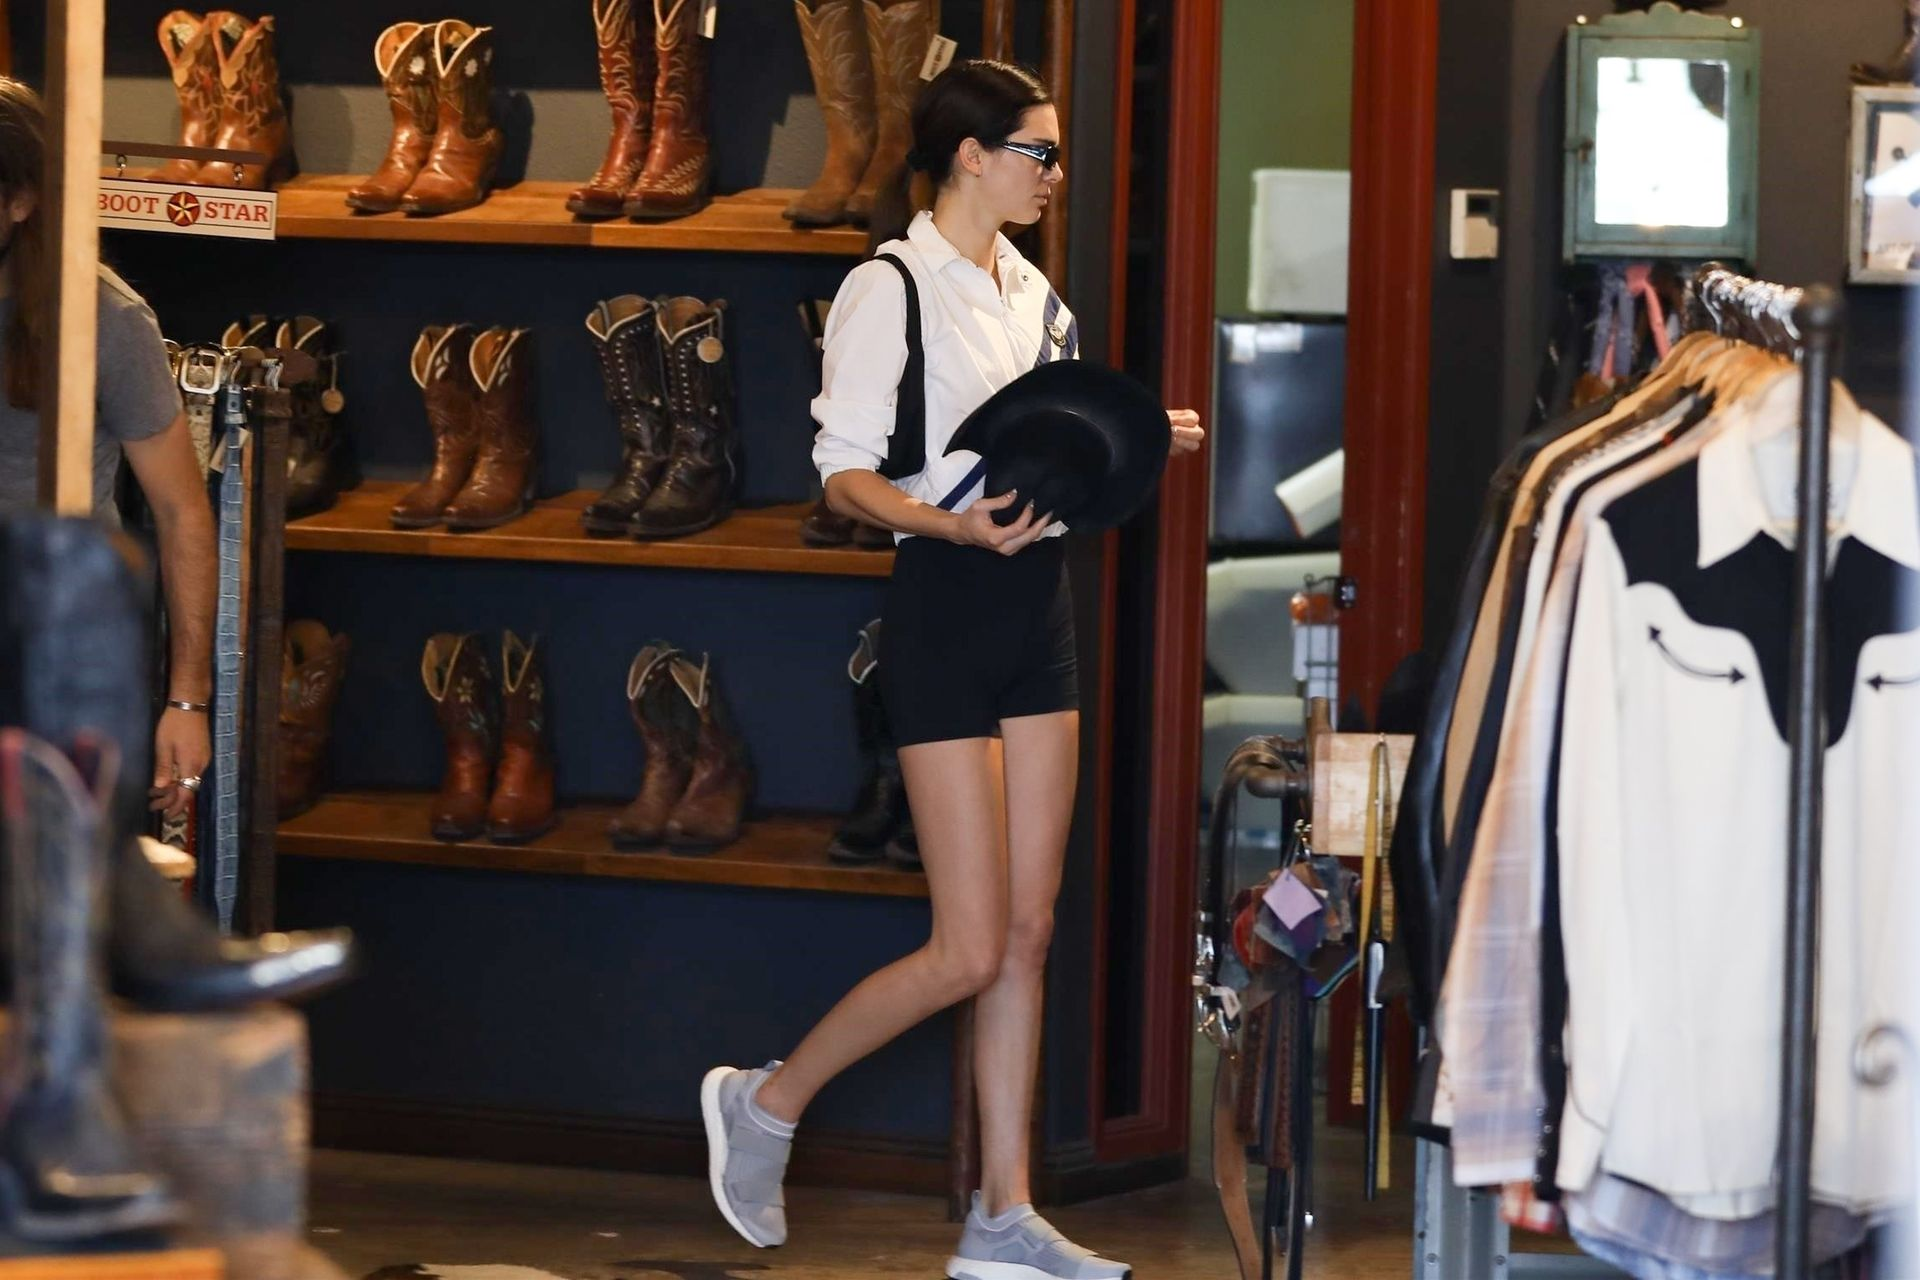 Kendall Jenner Showcases Her Cellulite Legs In Tiny Spandex Shorts In Los Angeles 0059